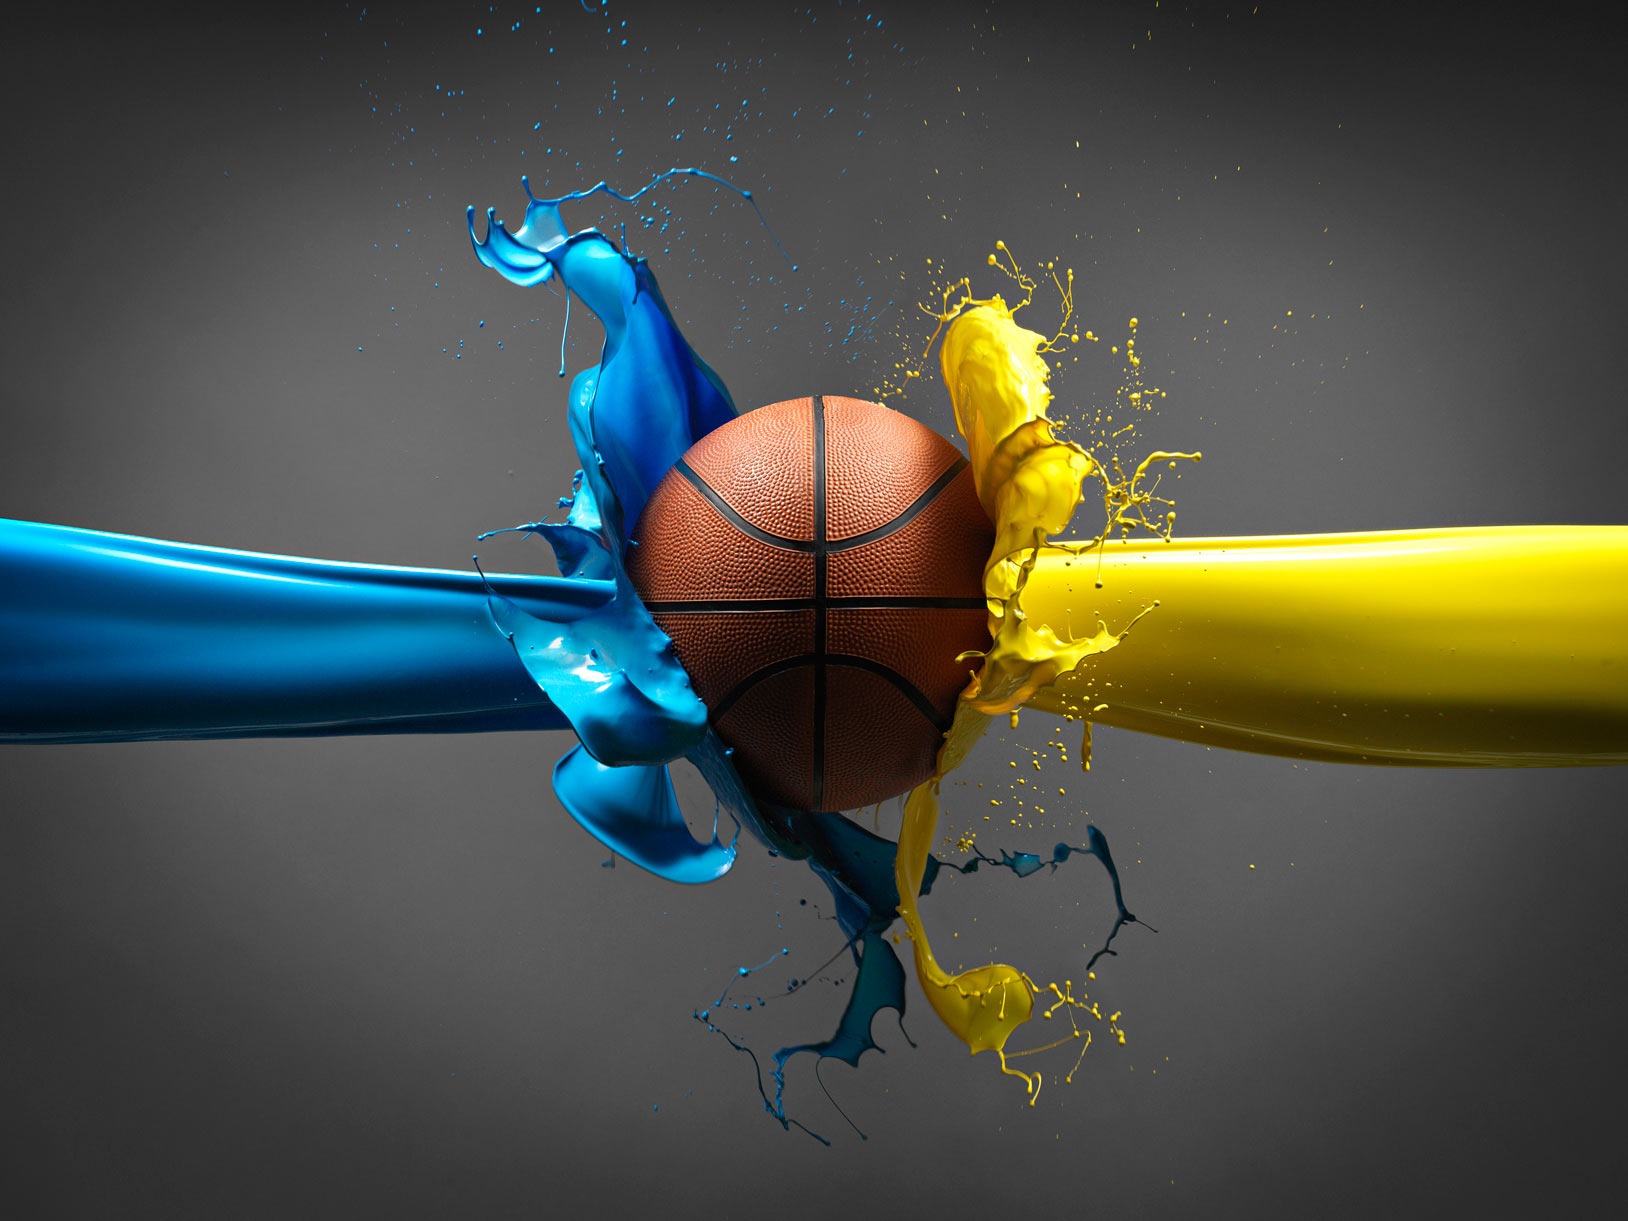 Basketball with blue and yellow paint splash